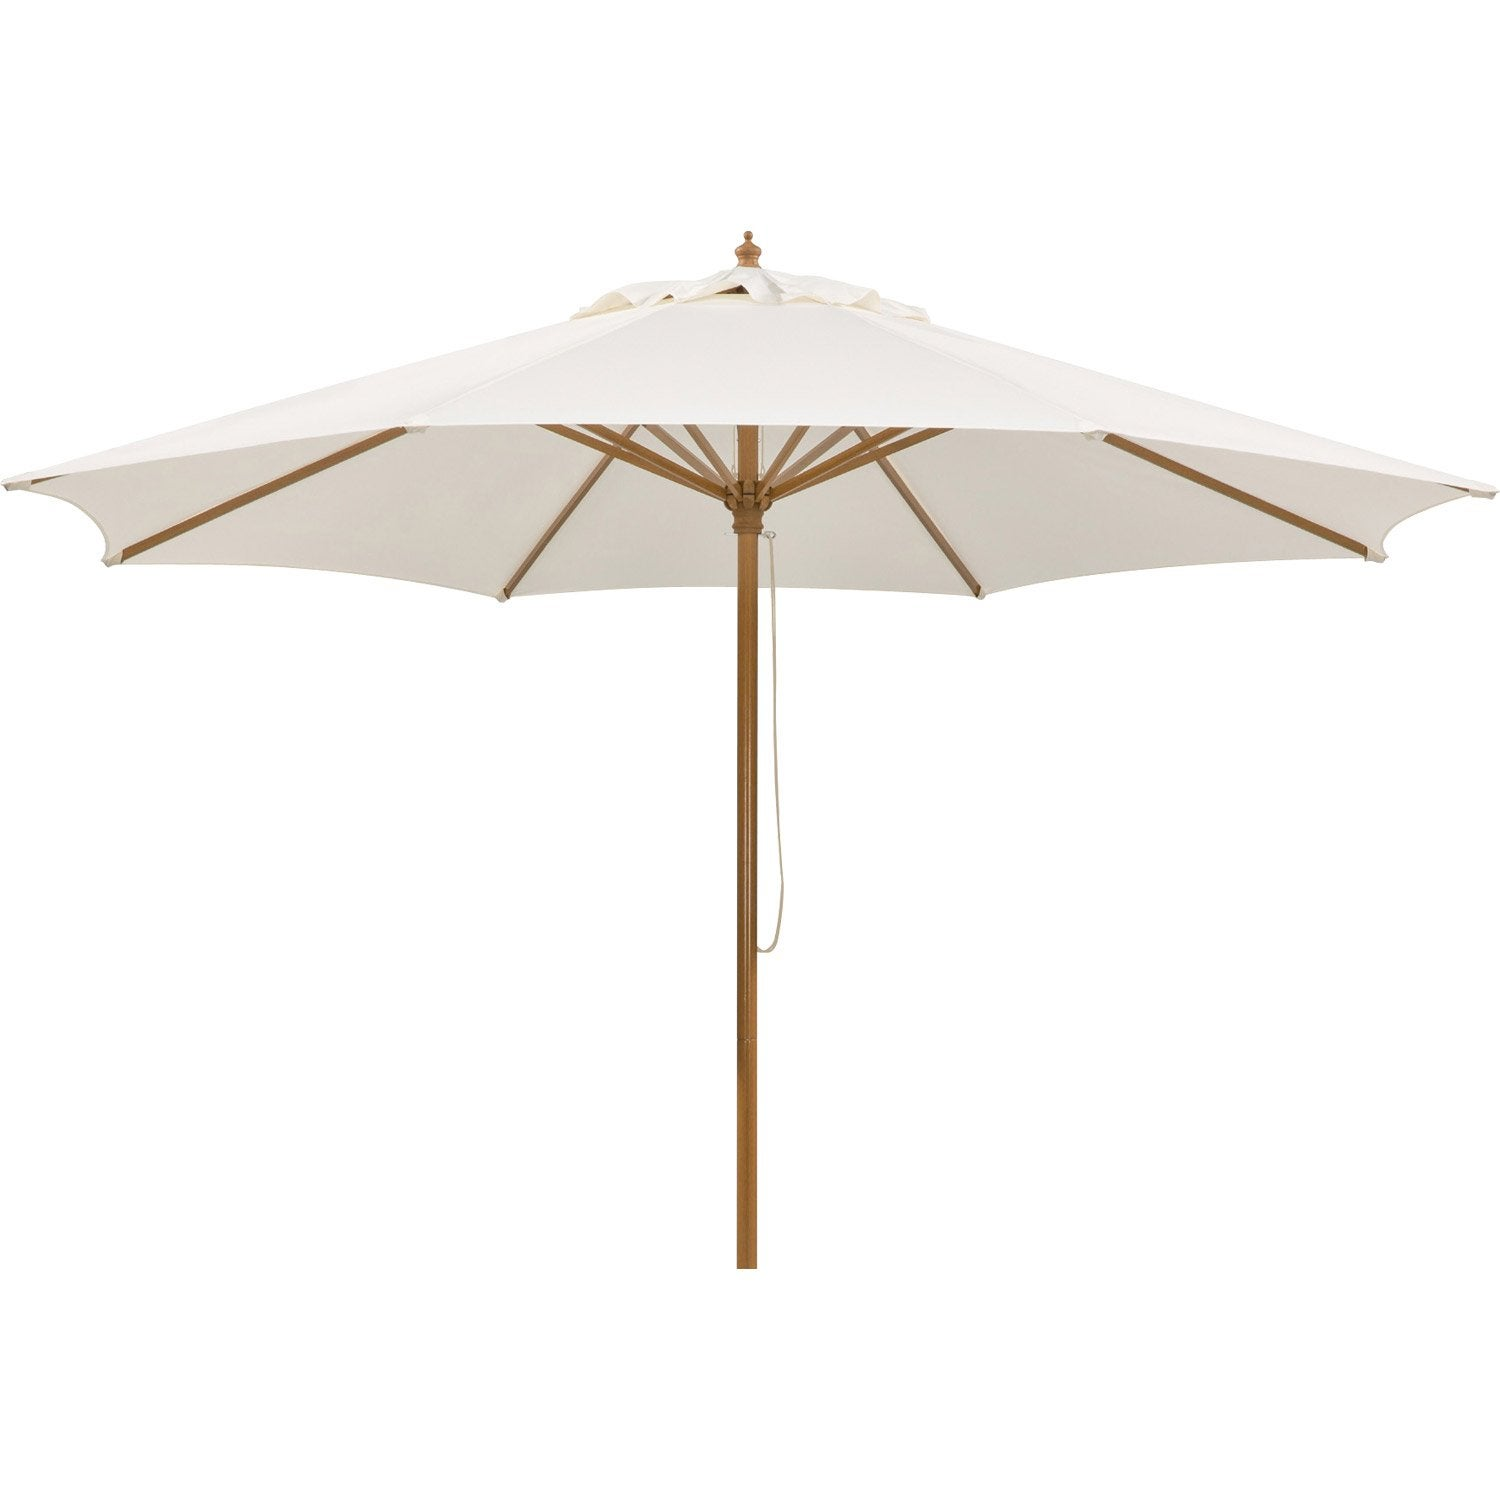 parasol droit malaga schneider naturel 7 6 m leroy merlin. Black Bedroom Furniture Sets. Home Design Ideas